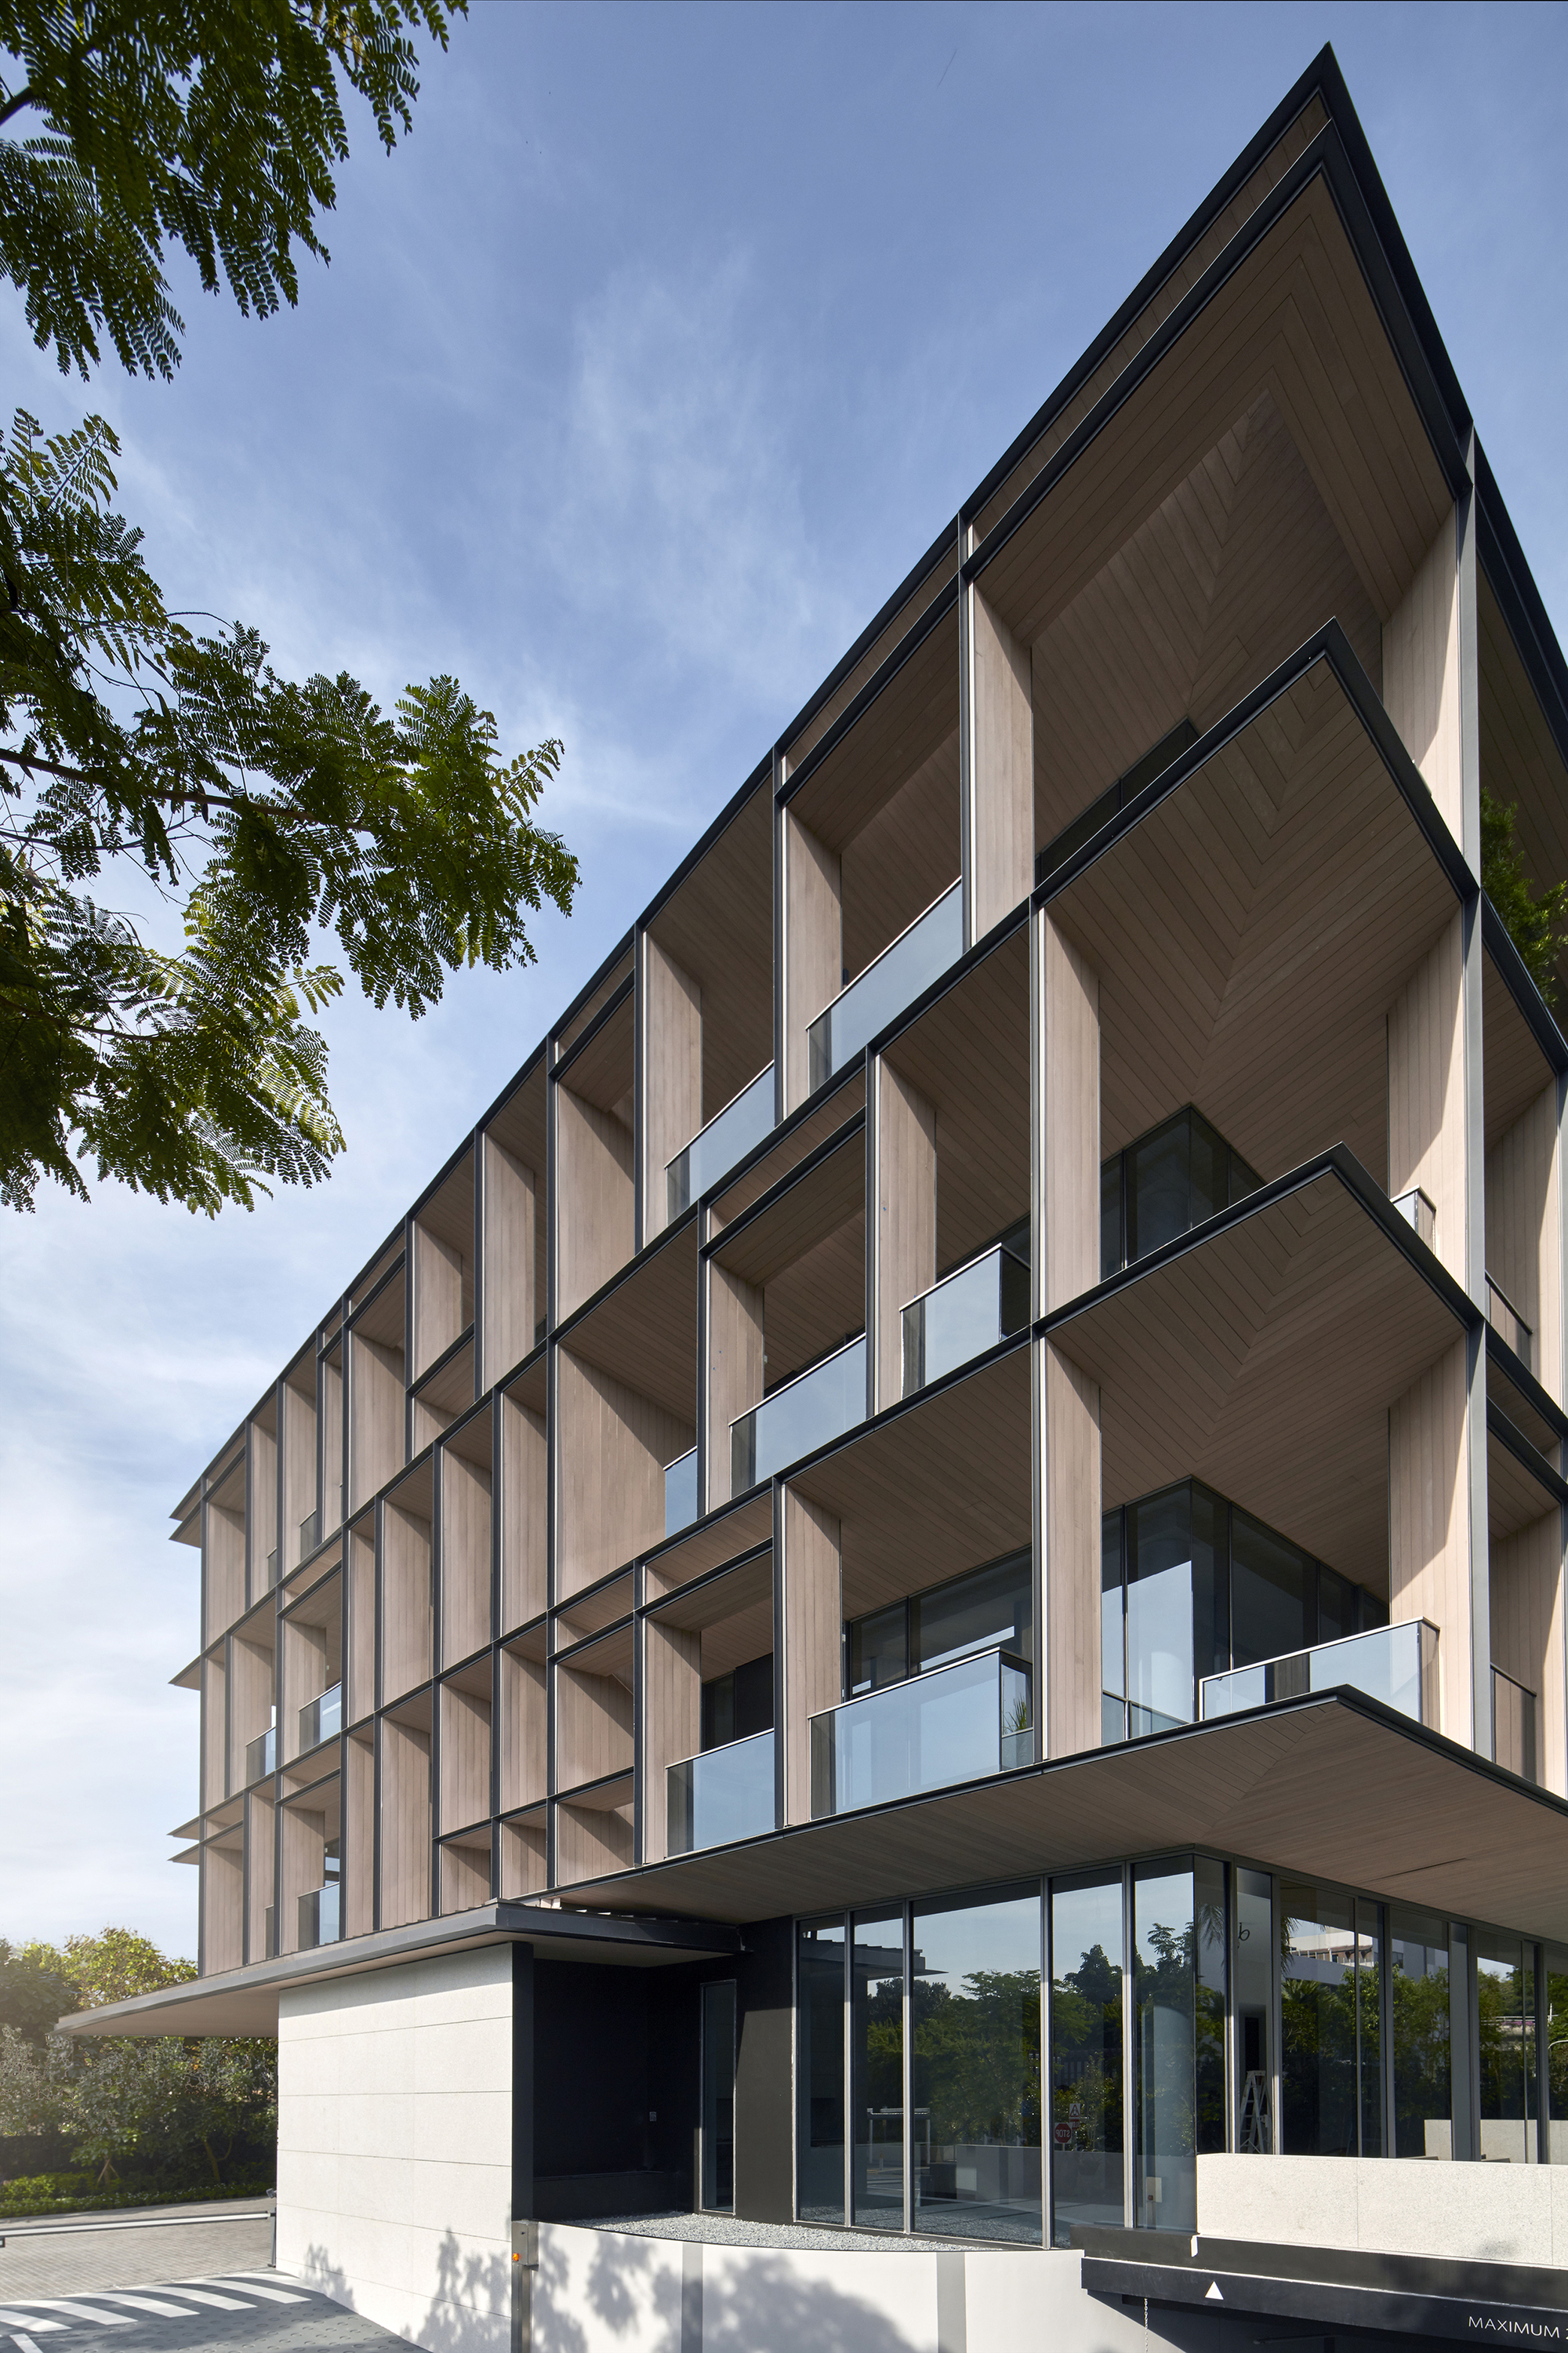 Gallery of Cluny Park Residence  SCDA Architects  6